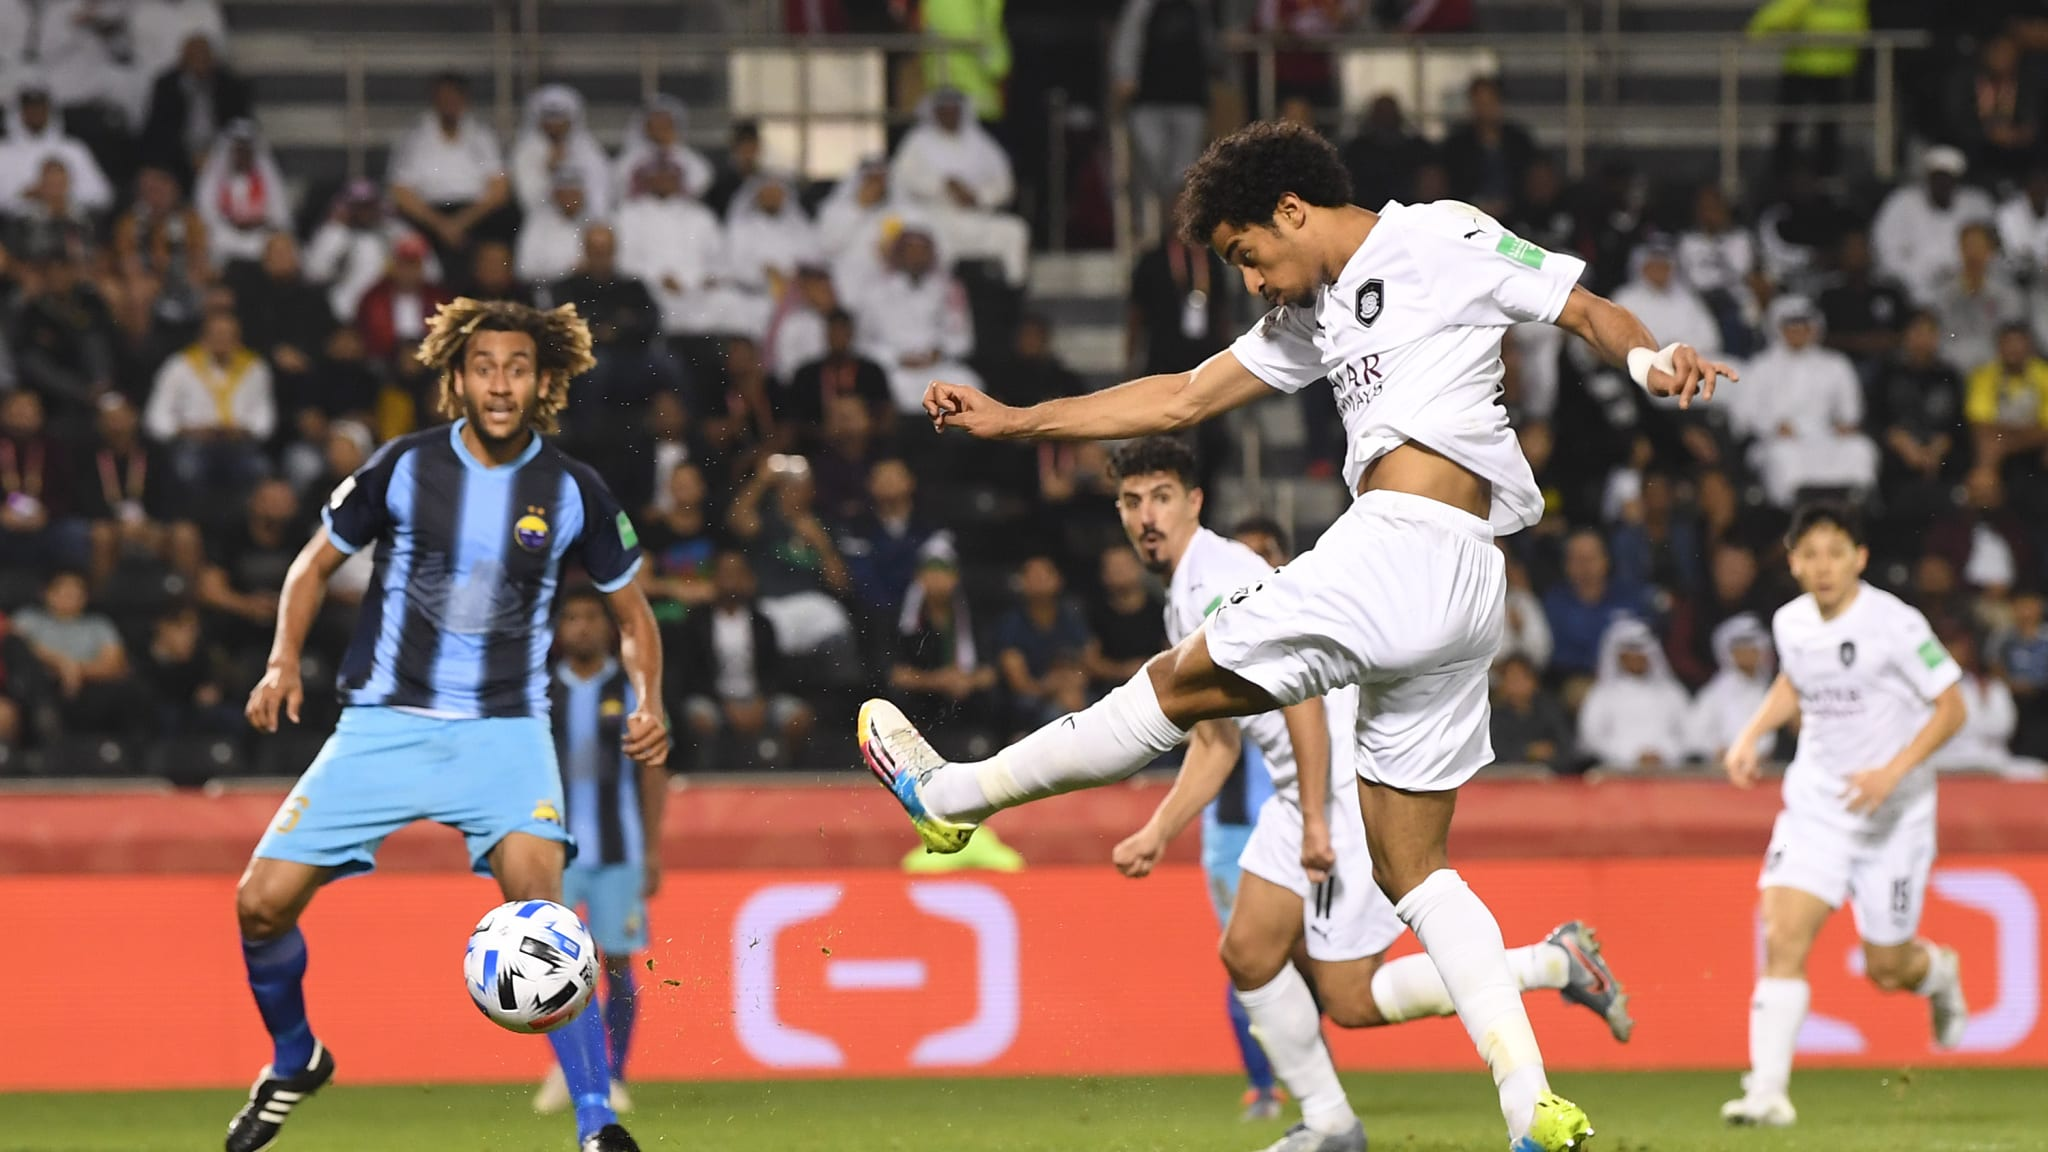 Akram Afif of Al-Sadd against Hienghene at FIFA Club World Cup Qatar 2019